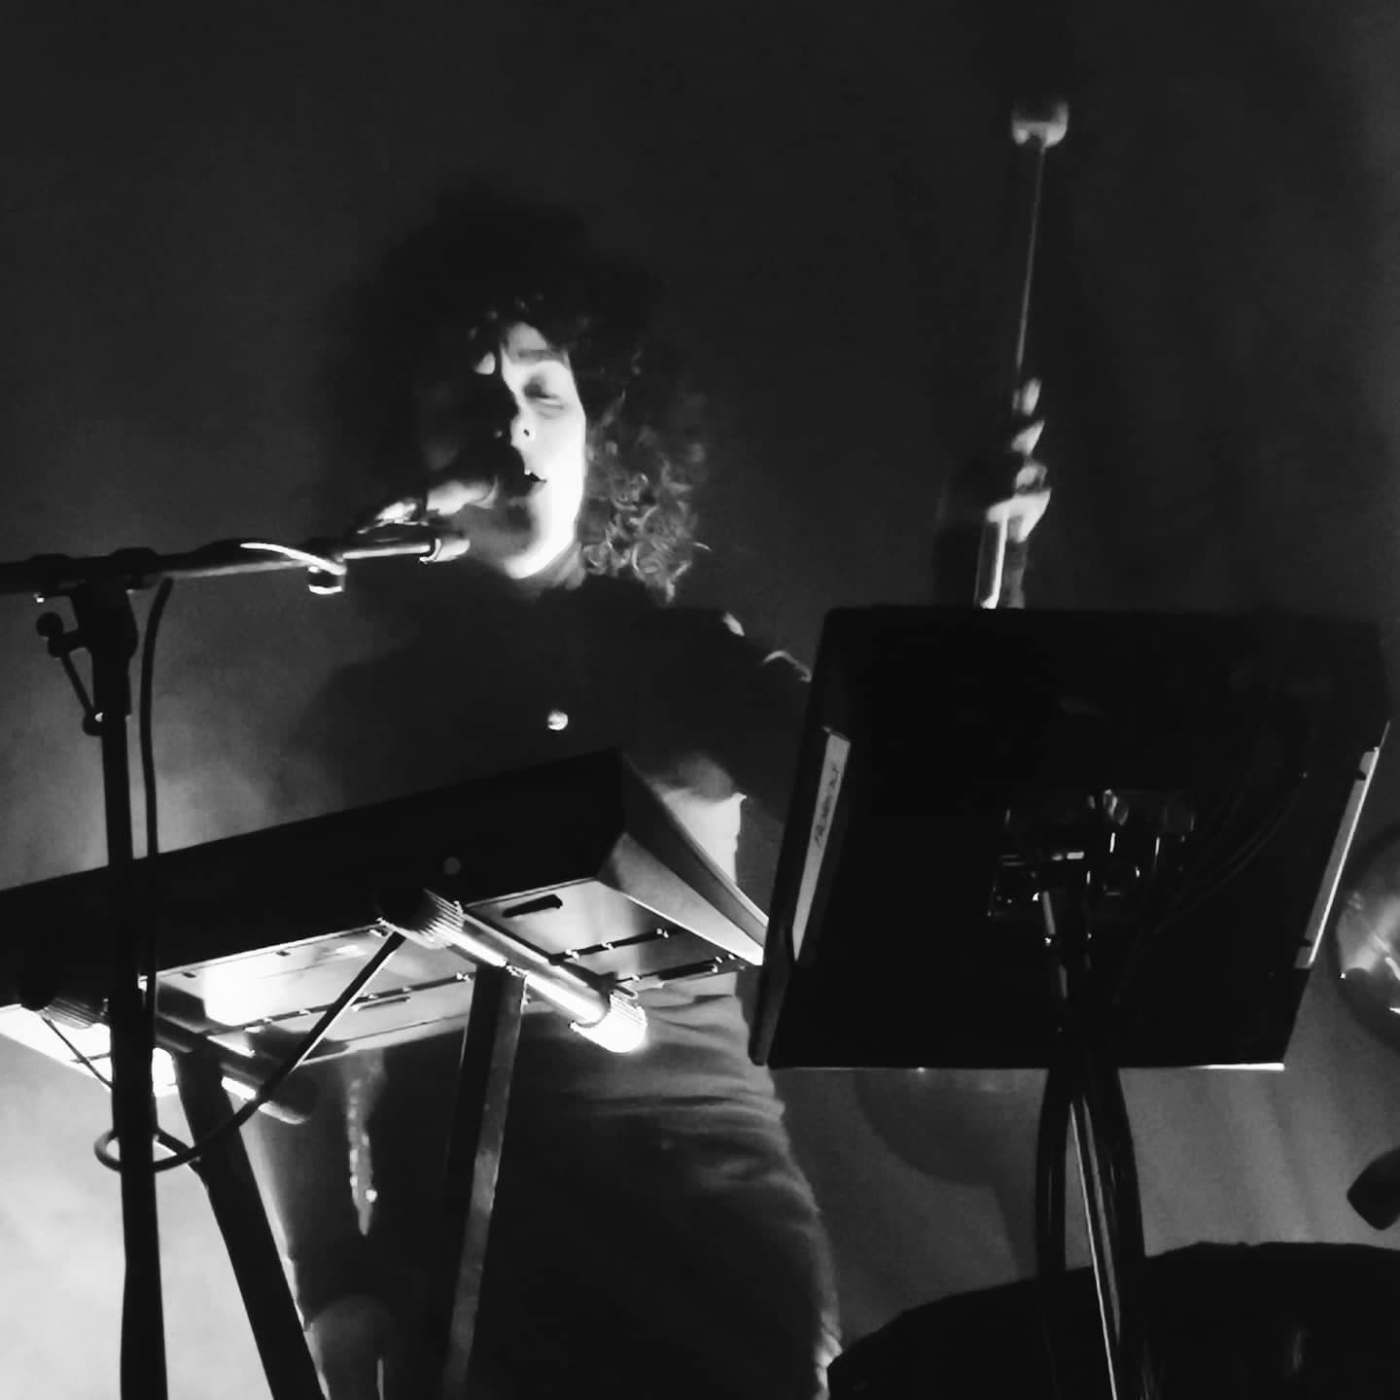 A greyscale image of Kathryn Joseph performing. She is partly obscured by shadows, one half of her face is lit up. She sings into a microphone behind a keyboard and raises a soft mallet drumstick.